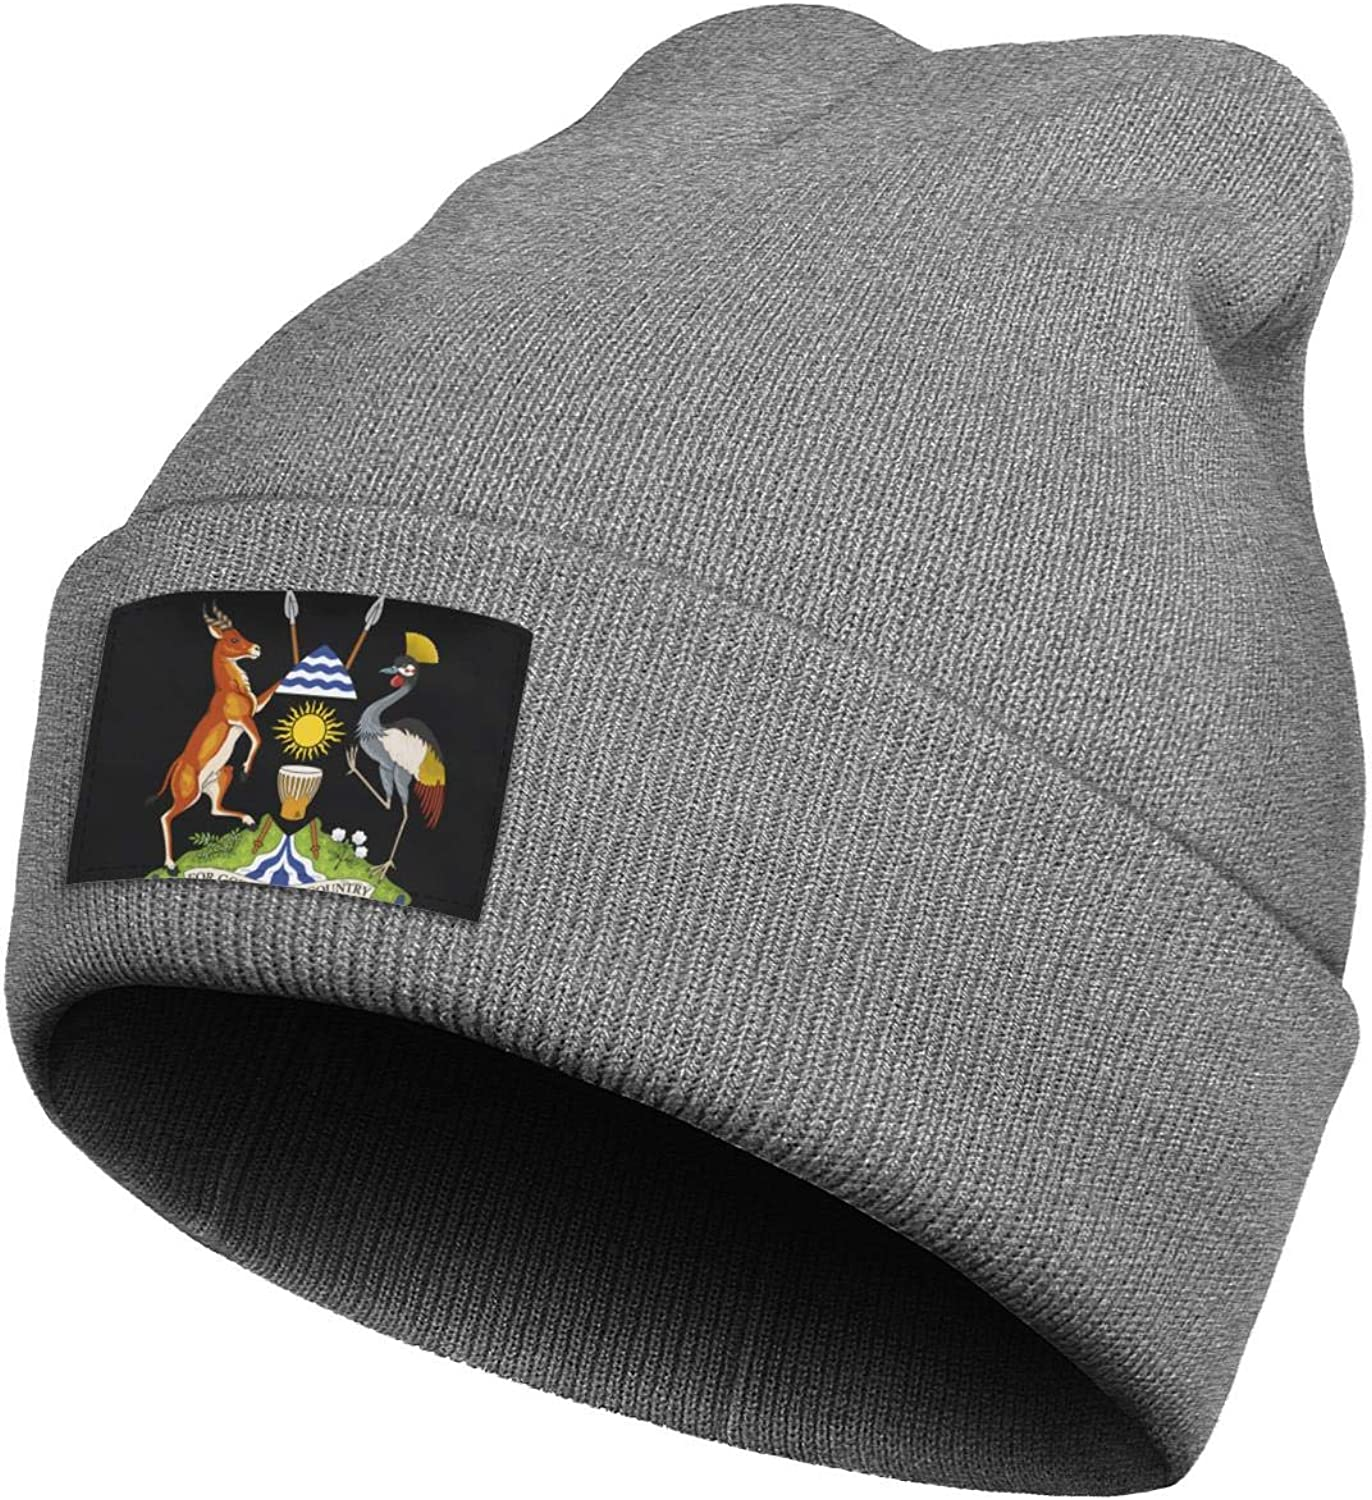 Amazon Com Beanie Hats For Men Women S Uganda Seal Or National Emblem Acrylic Watch Cap Clothing